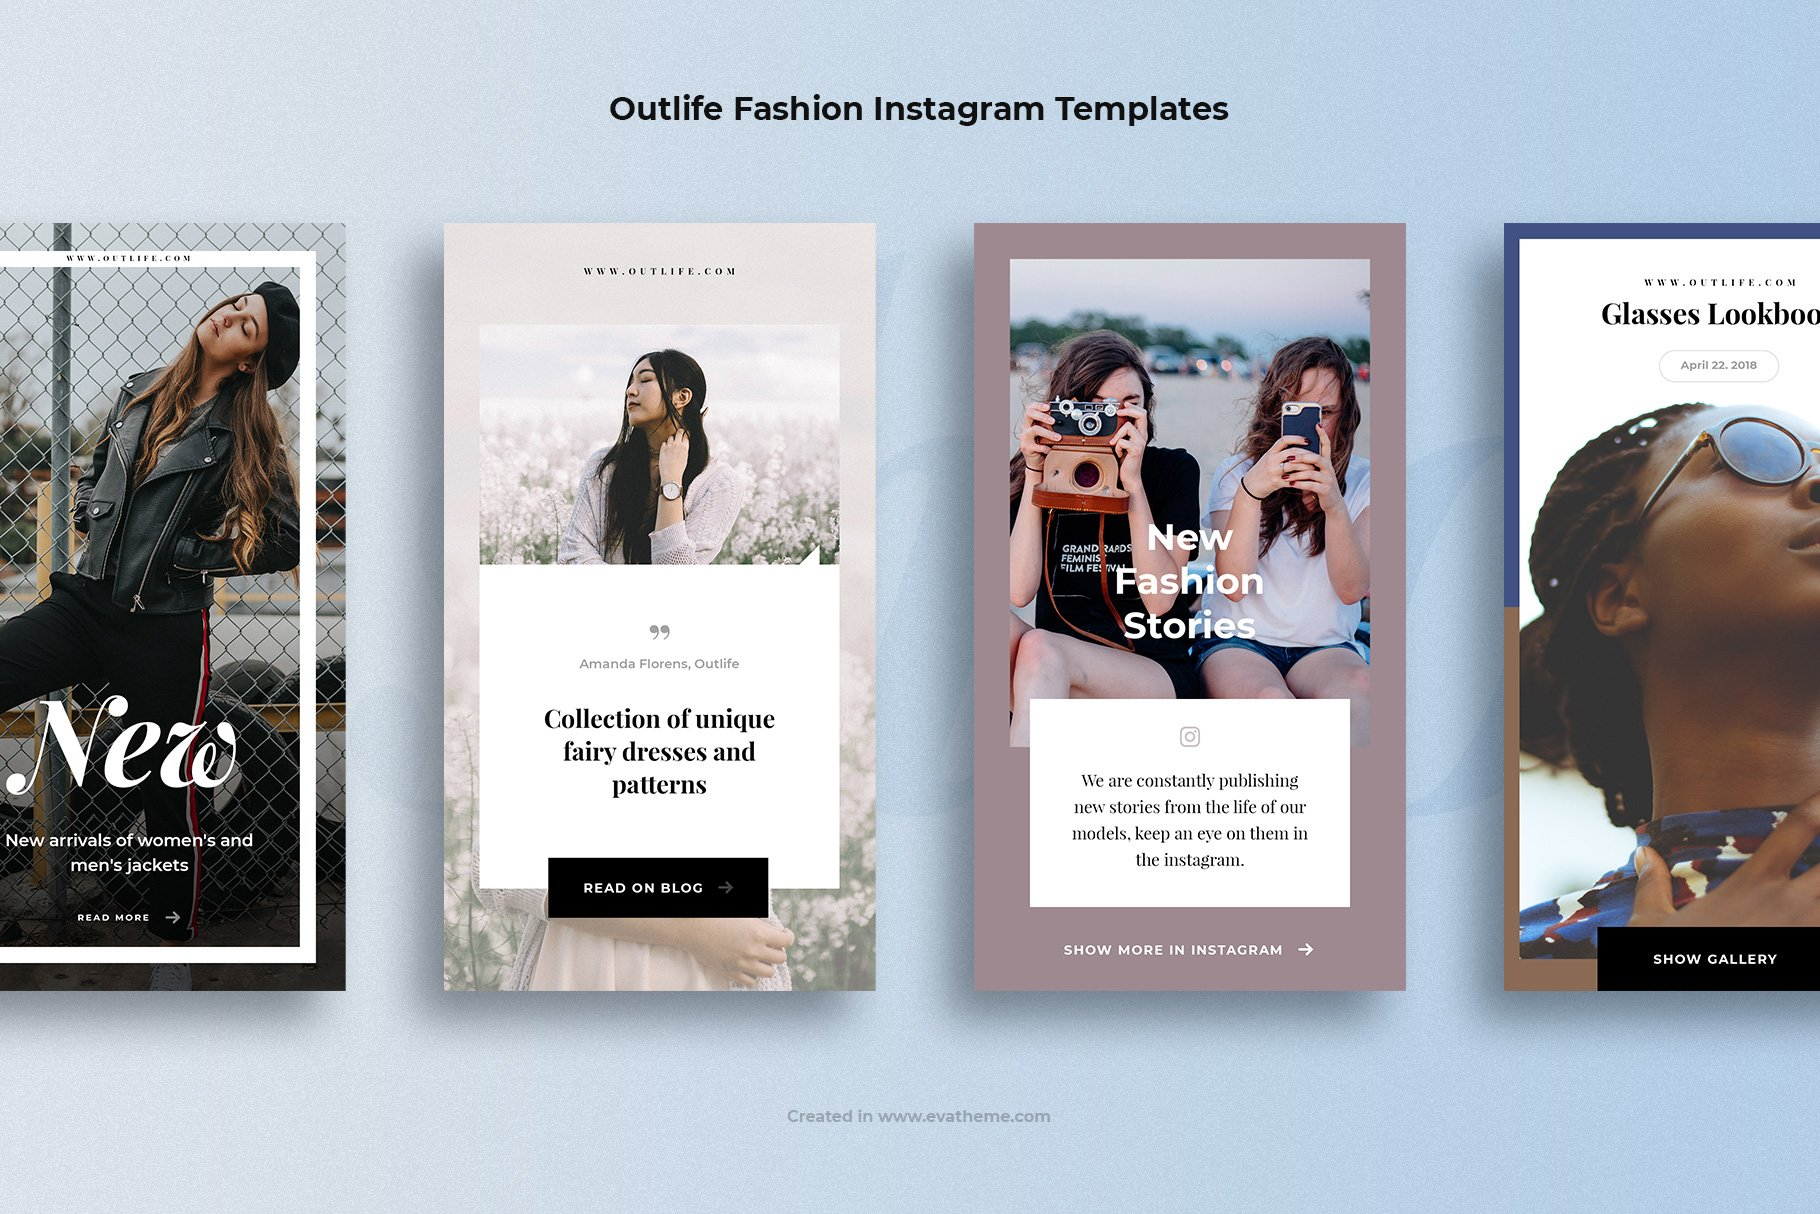 Outlife Fashion Instagram Templates example image 3